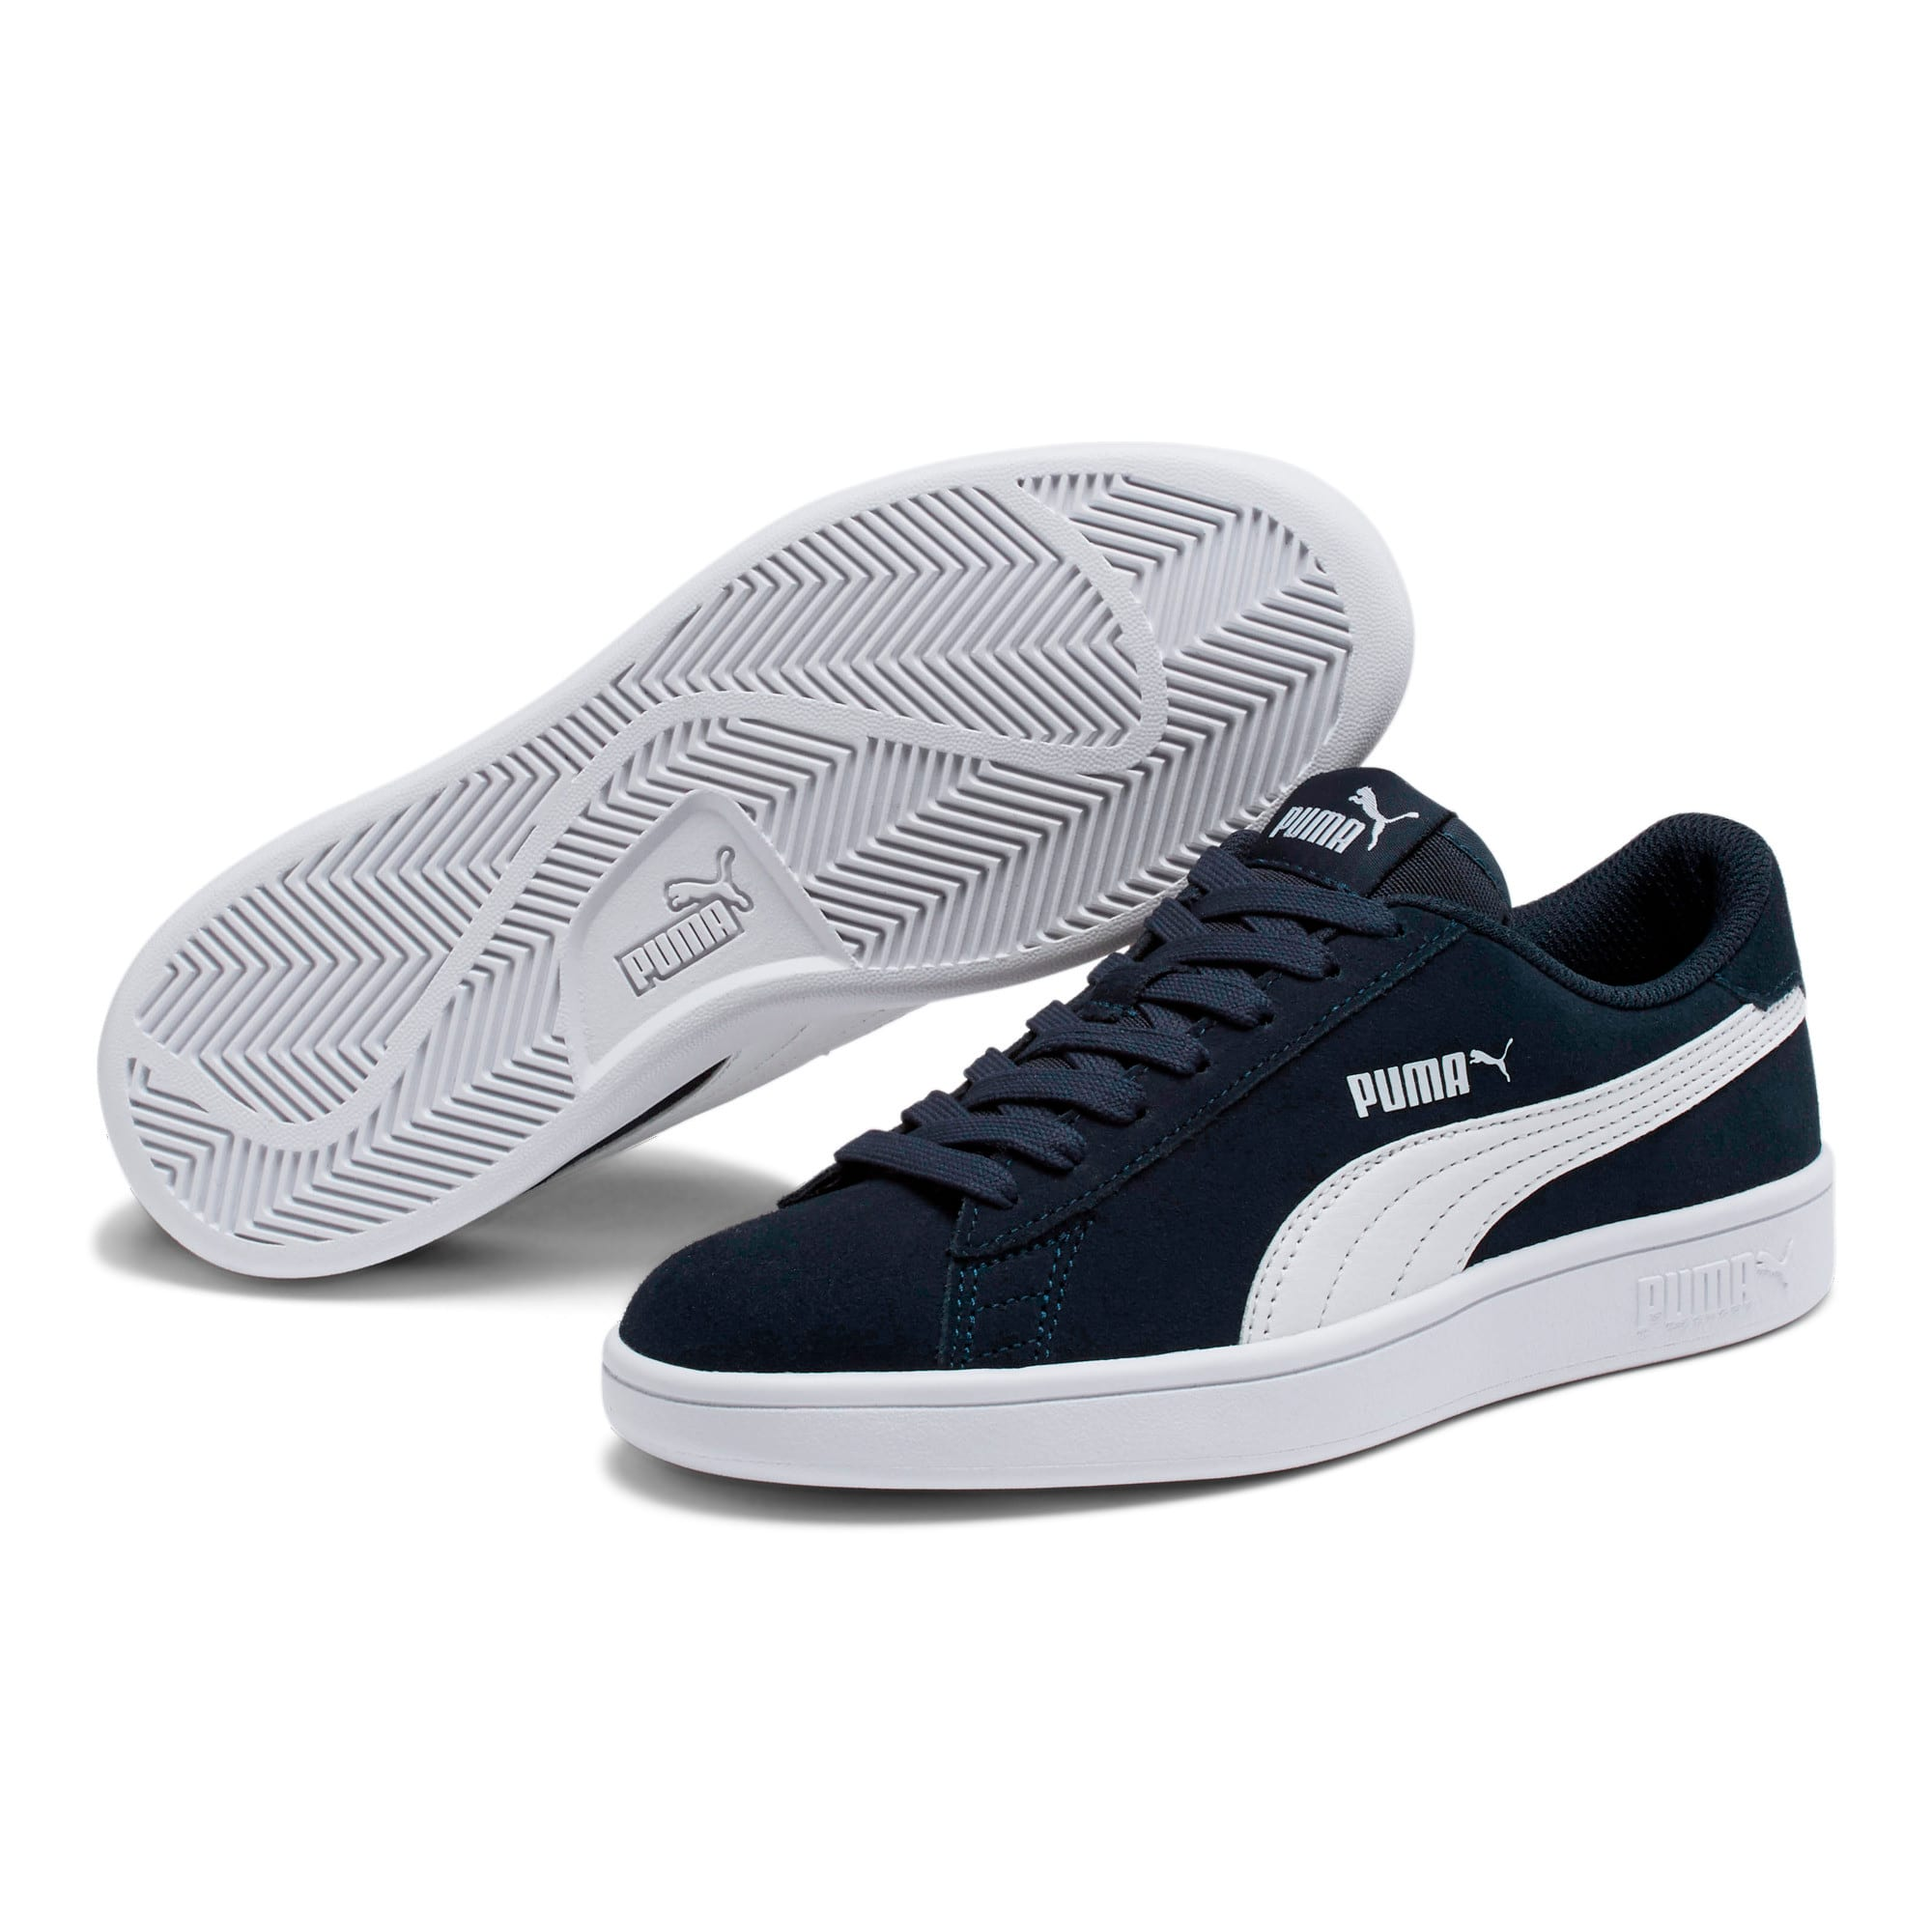 Thumbnail 2 of Smash v2 Suede Sneakers JR, Peacoat-Puma White, medium